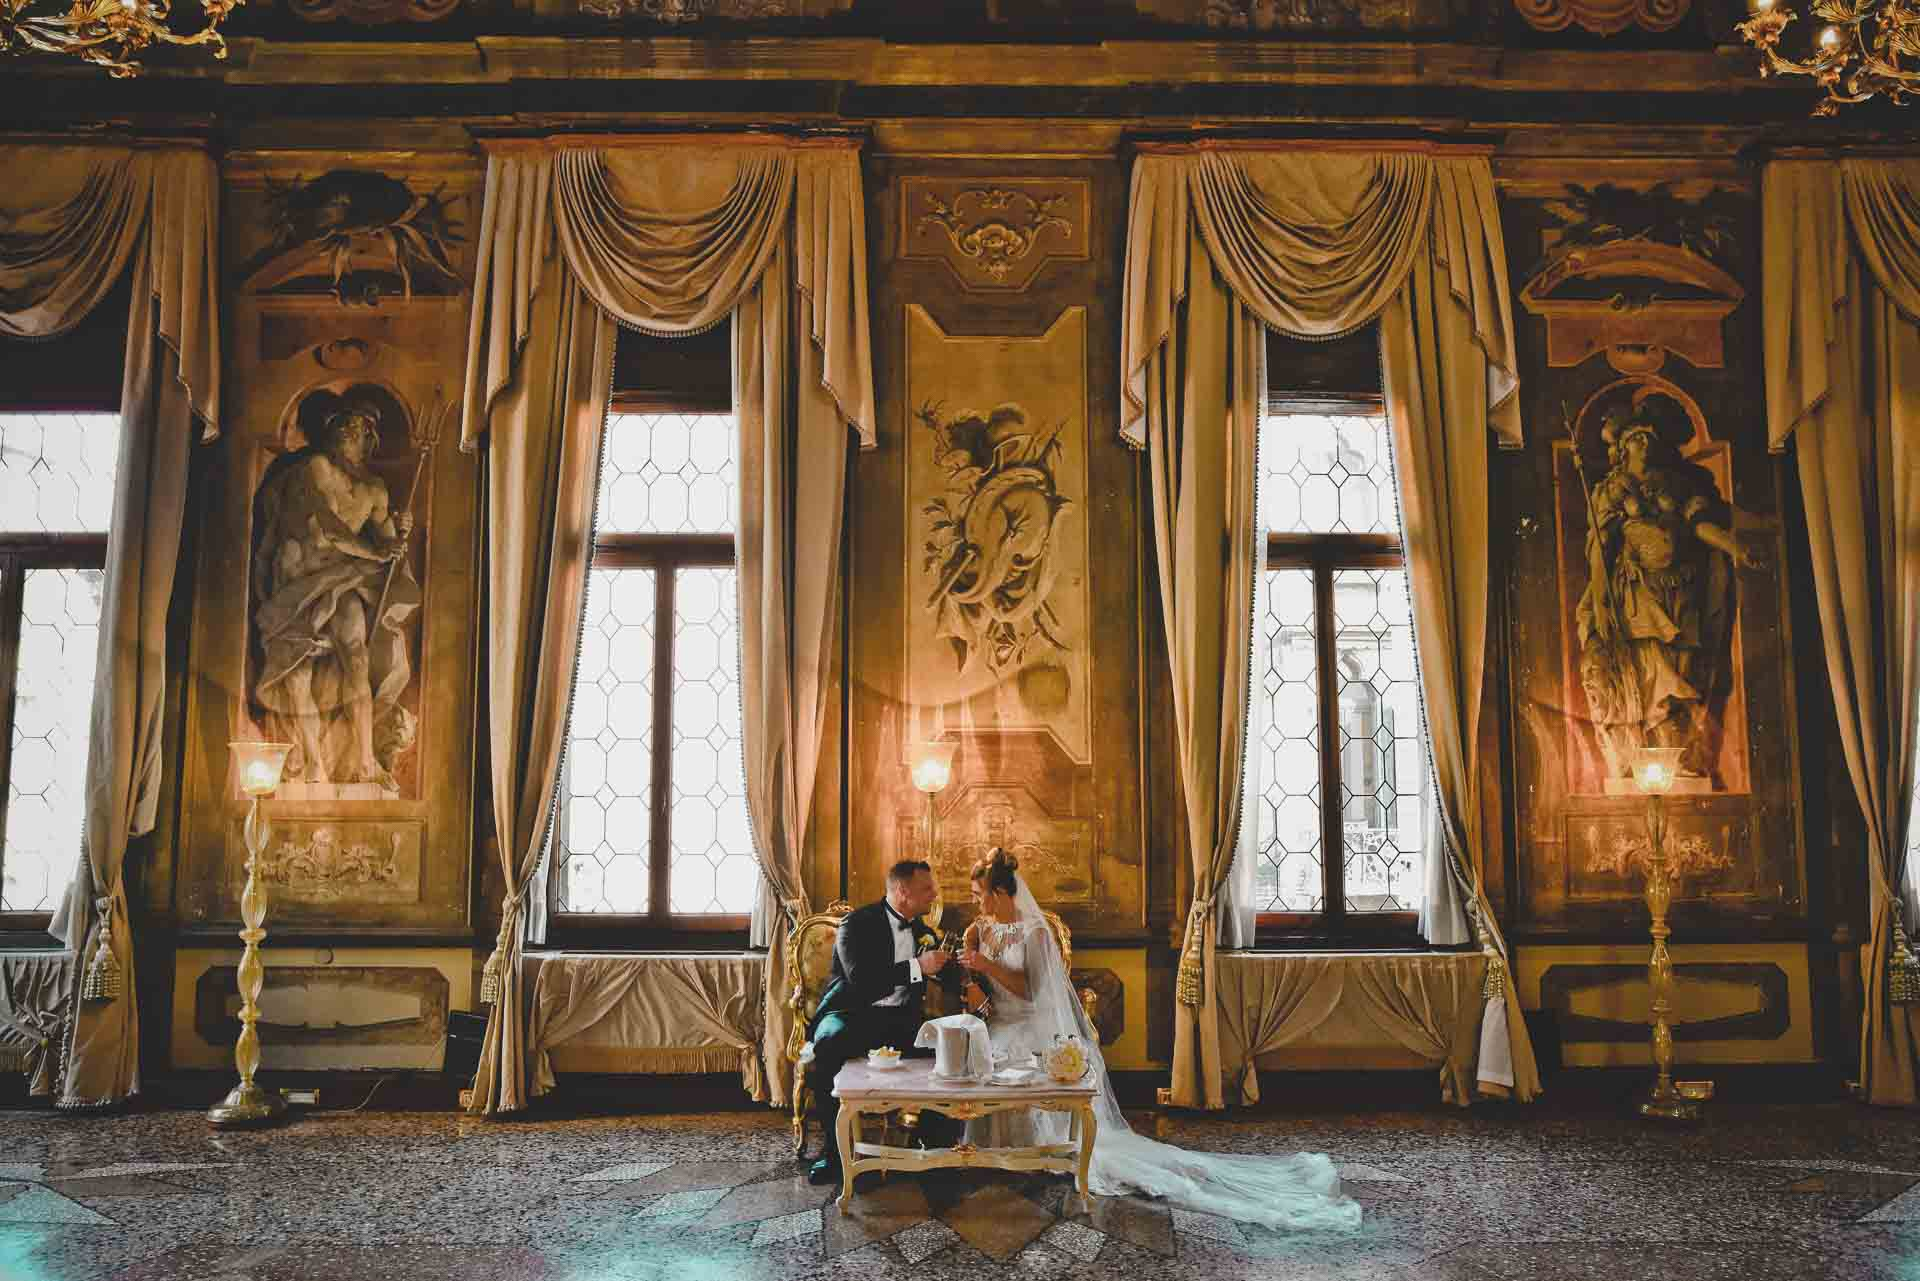 Wedding in a Palace